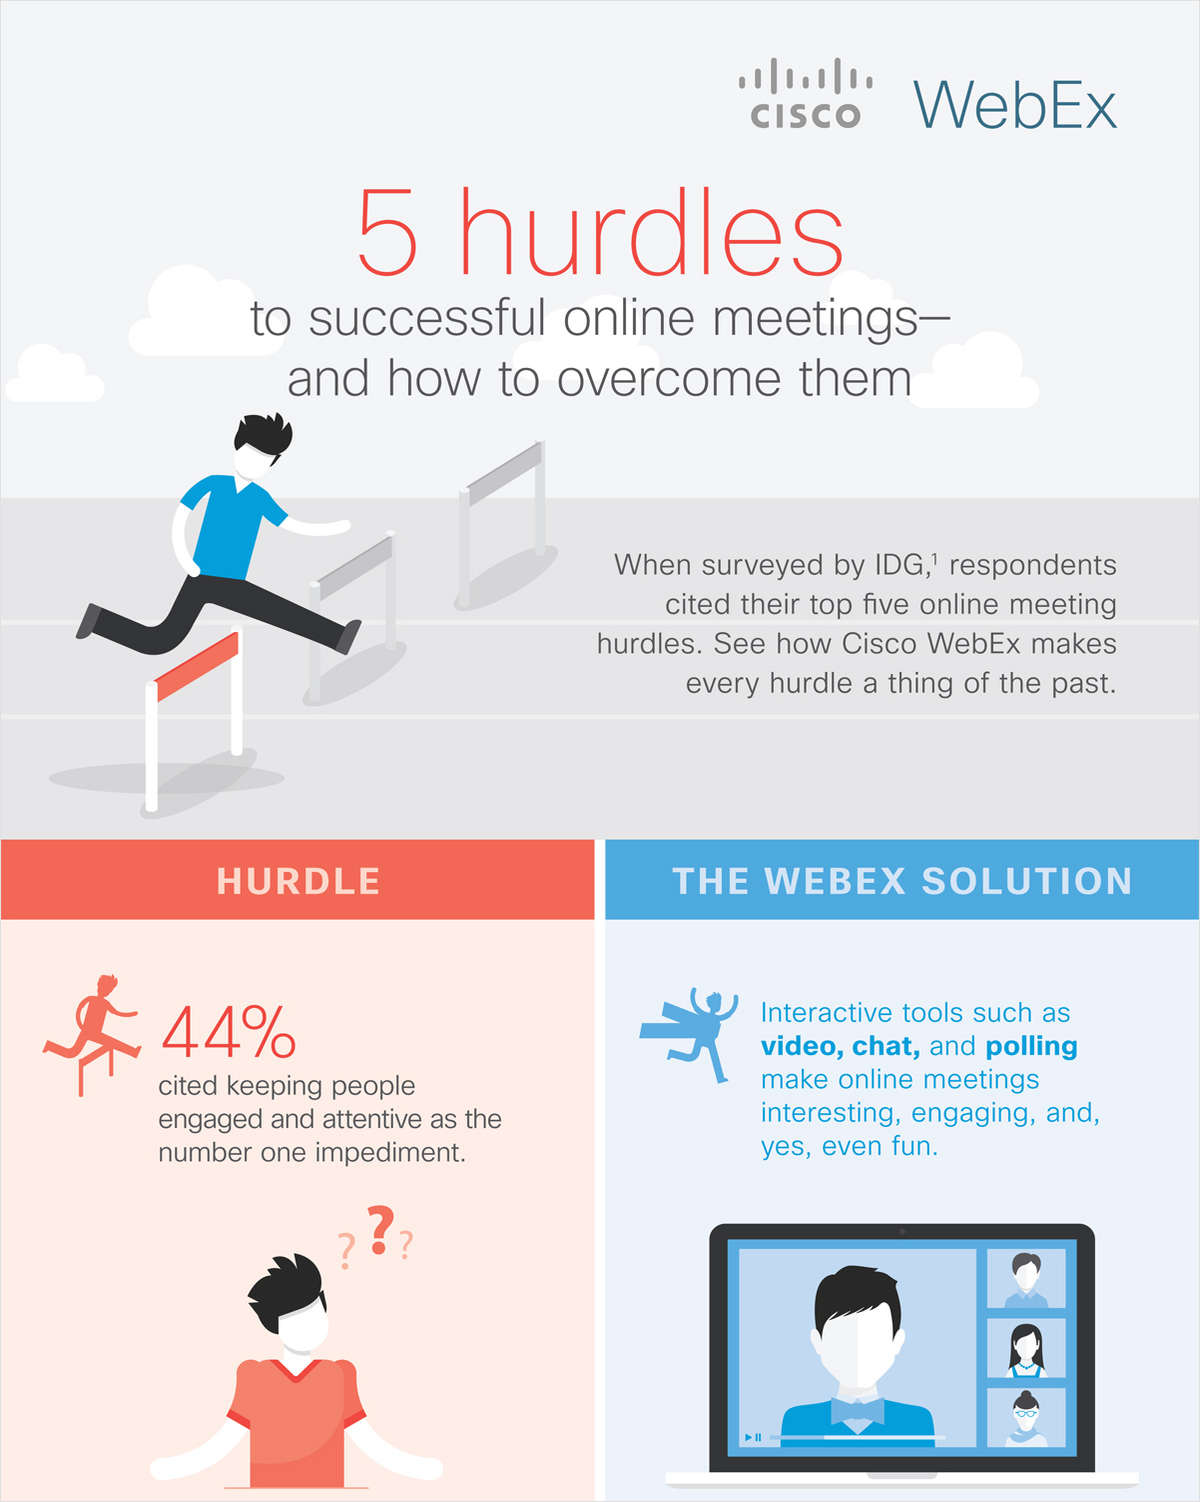 How to Overcome Hurdles to a Successful Online Meeting